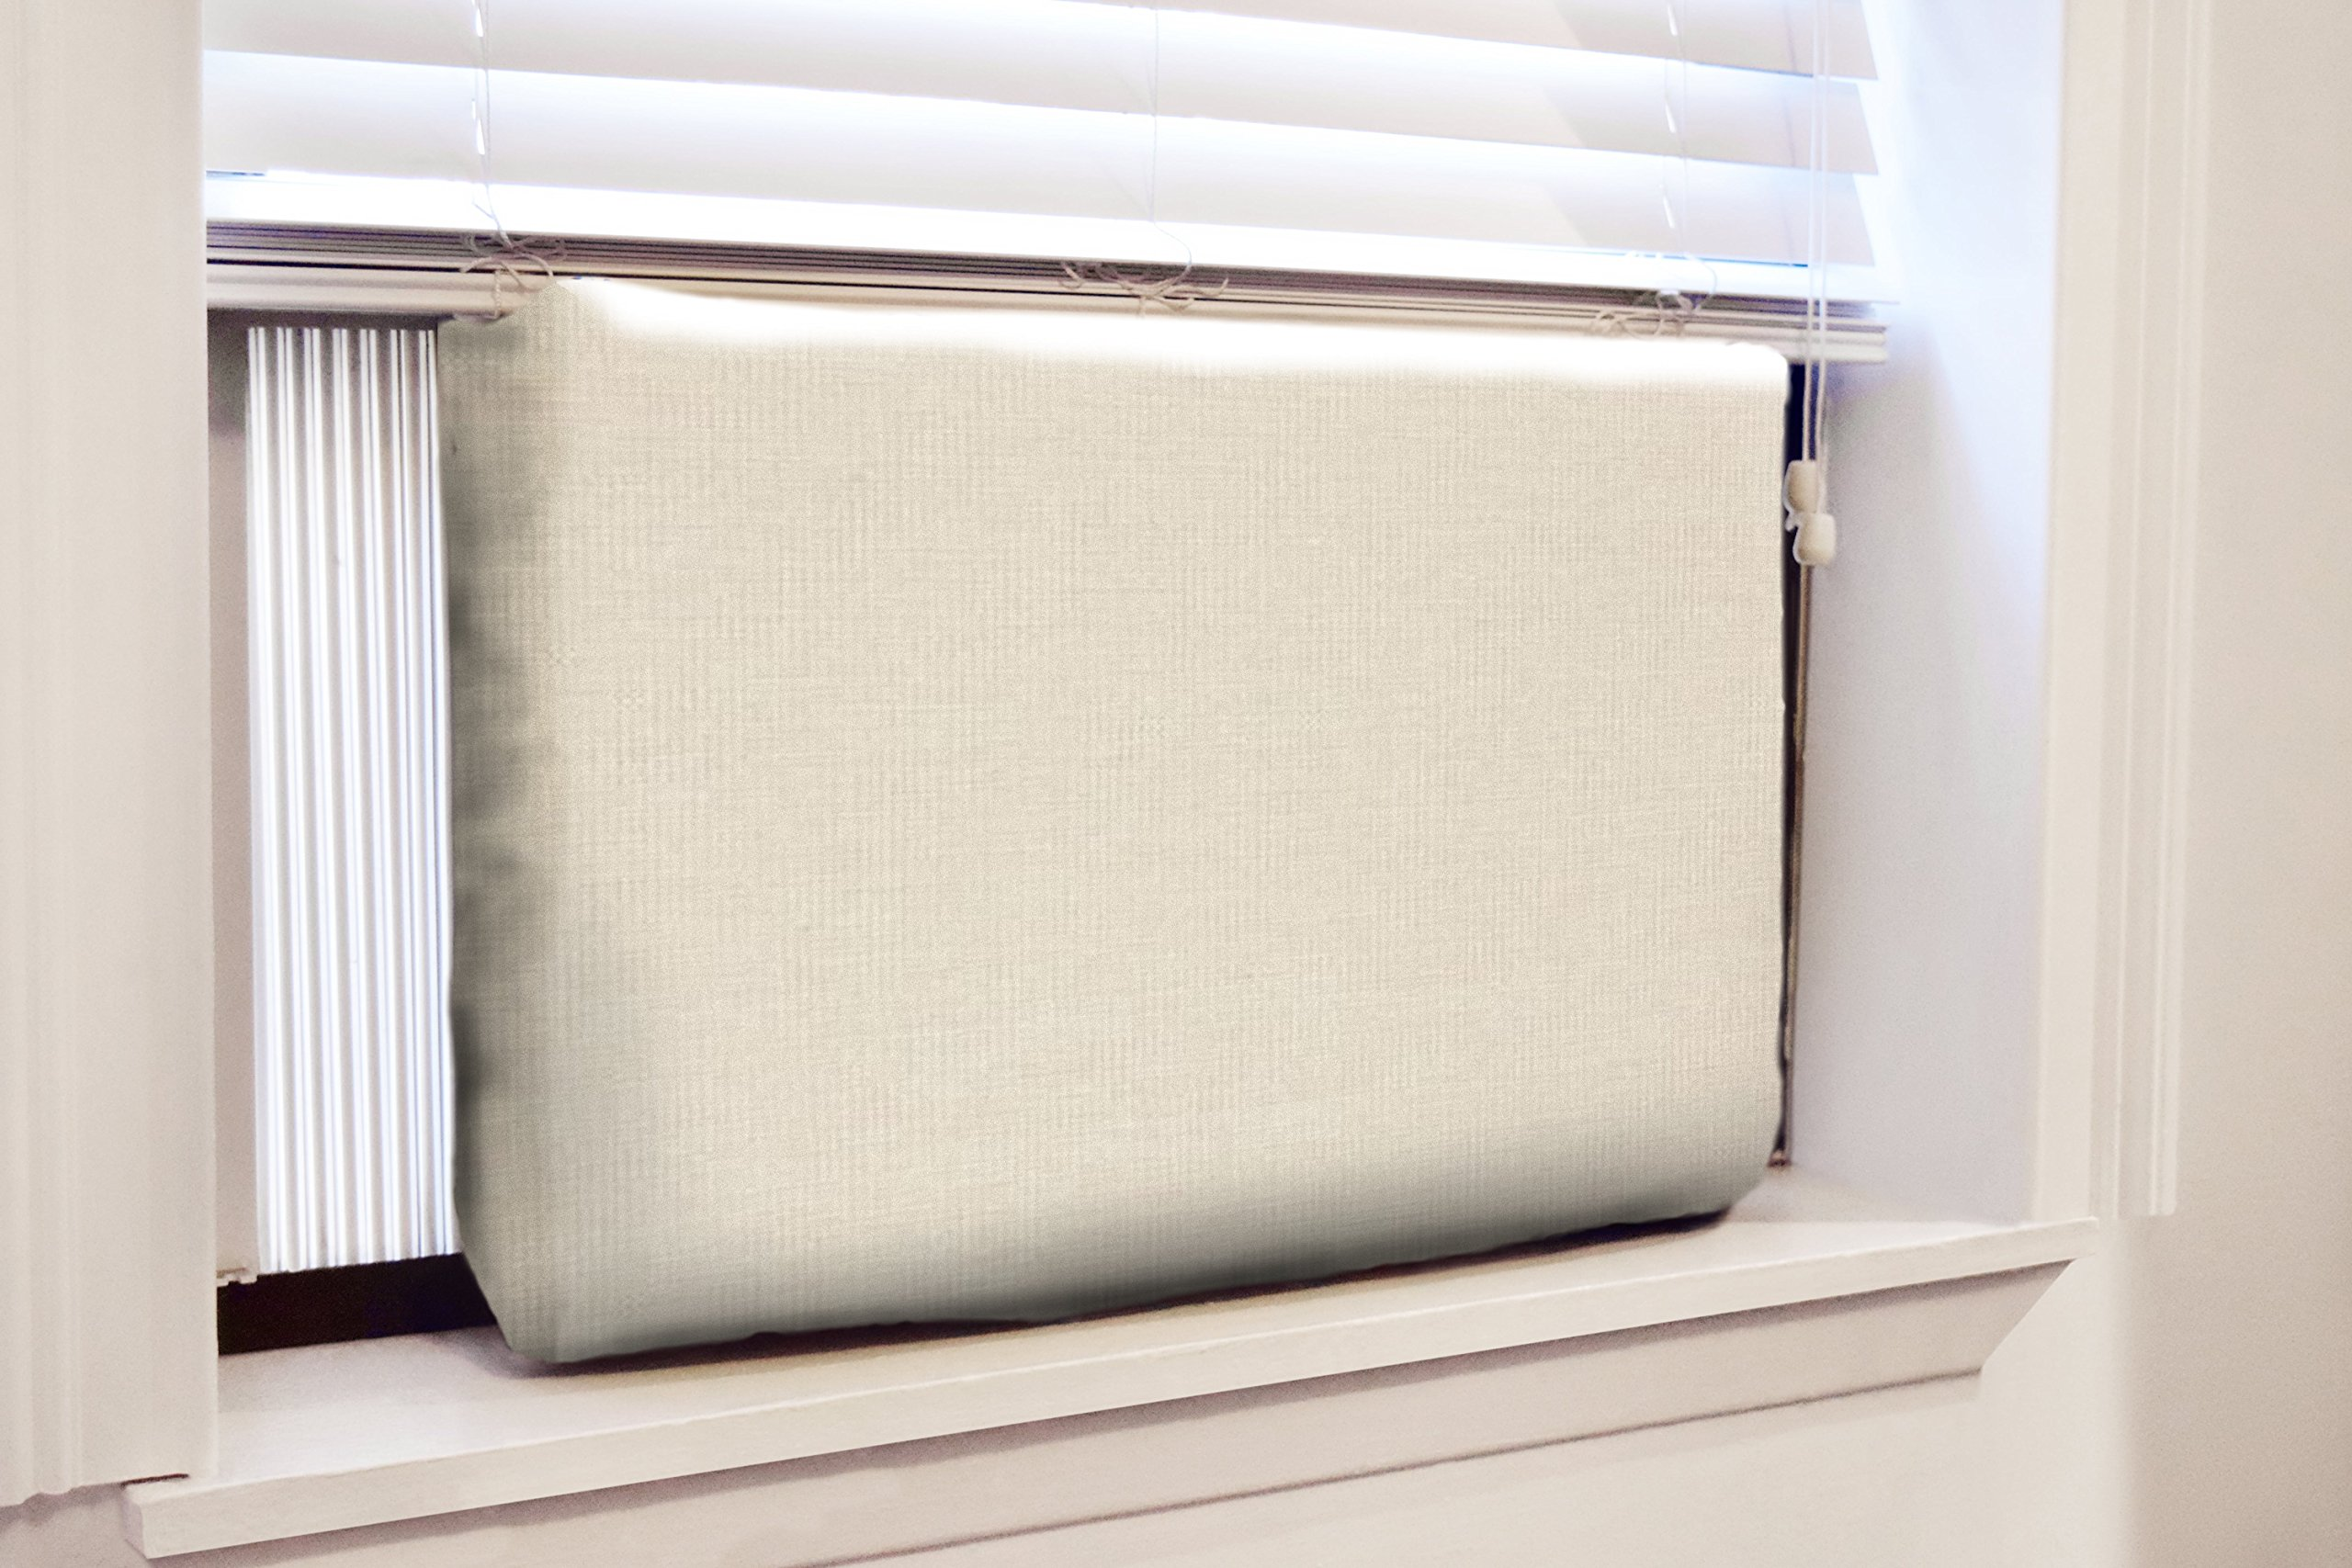 Gerrard Larriett Aromatherapy Pet Care Premium Quilted Indoor Air Conditioner Covers for Window Units 24'' W x 15'' H - Ivory